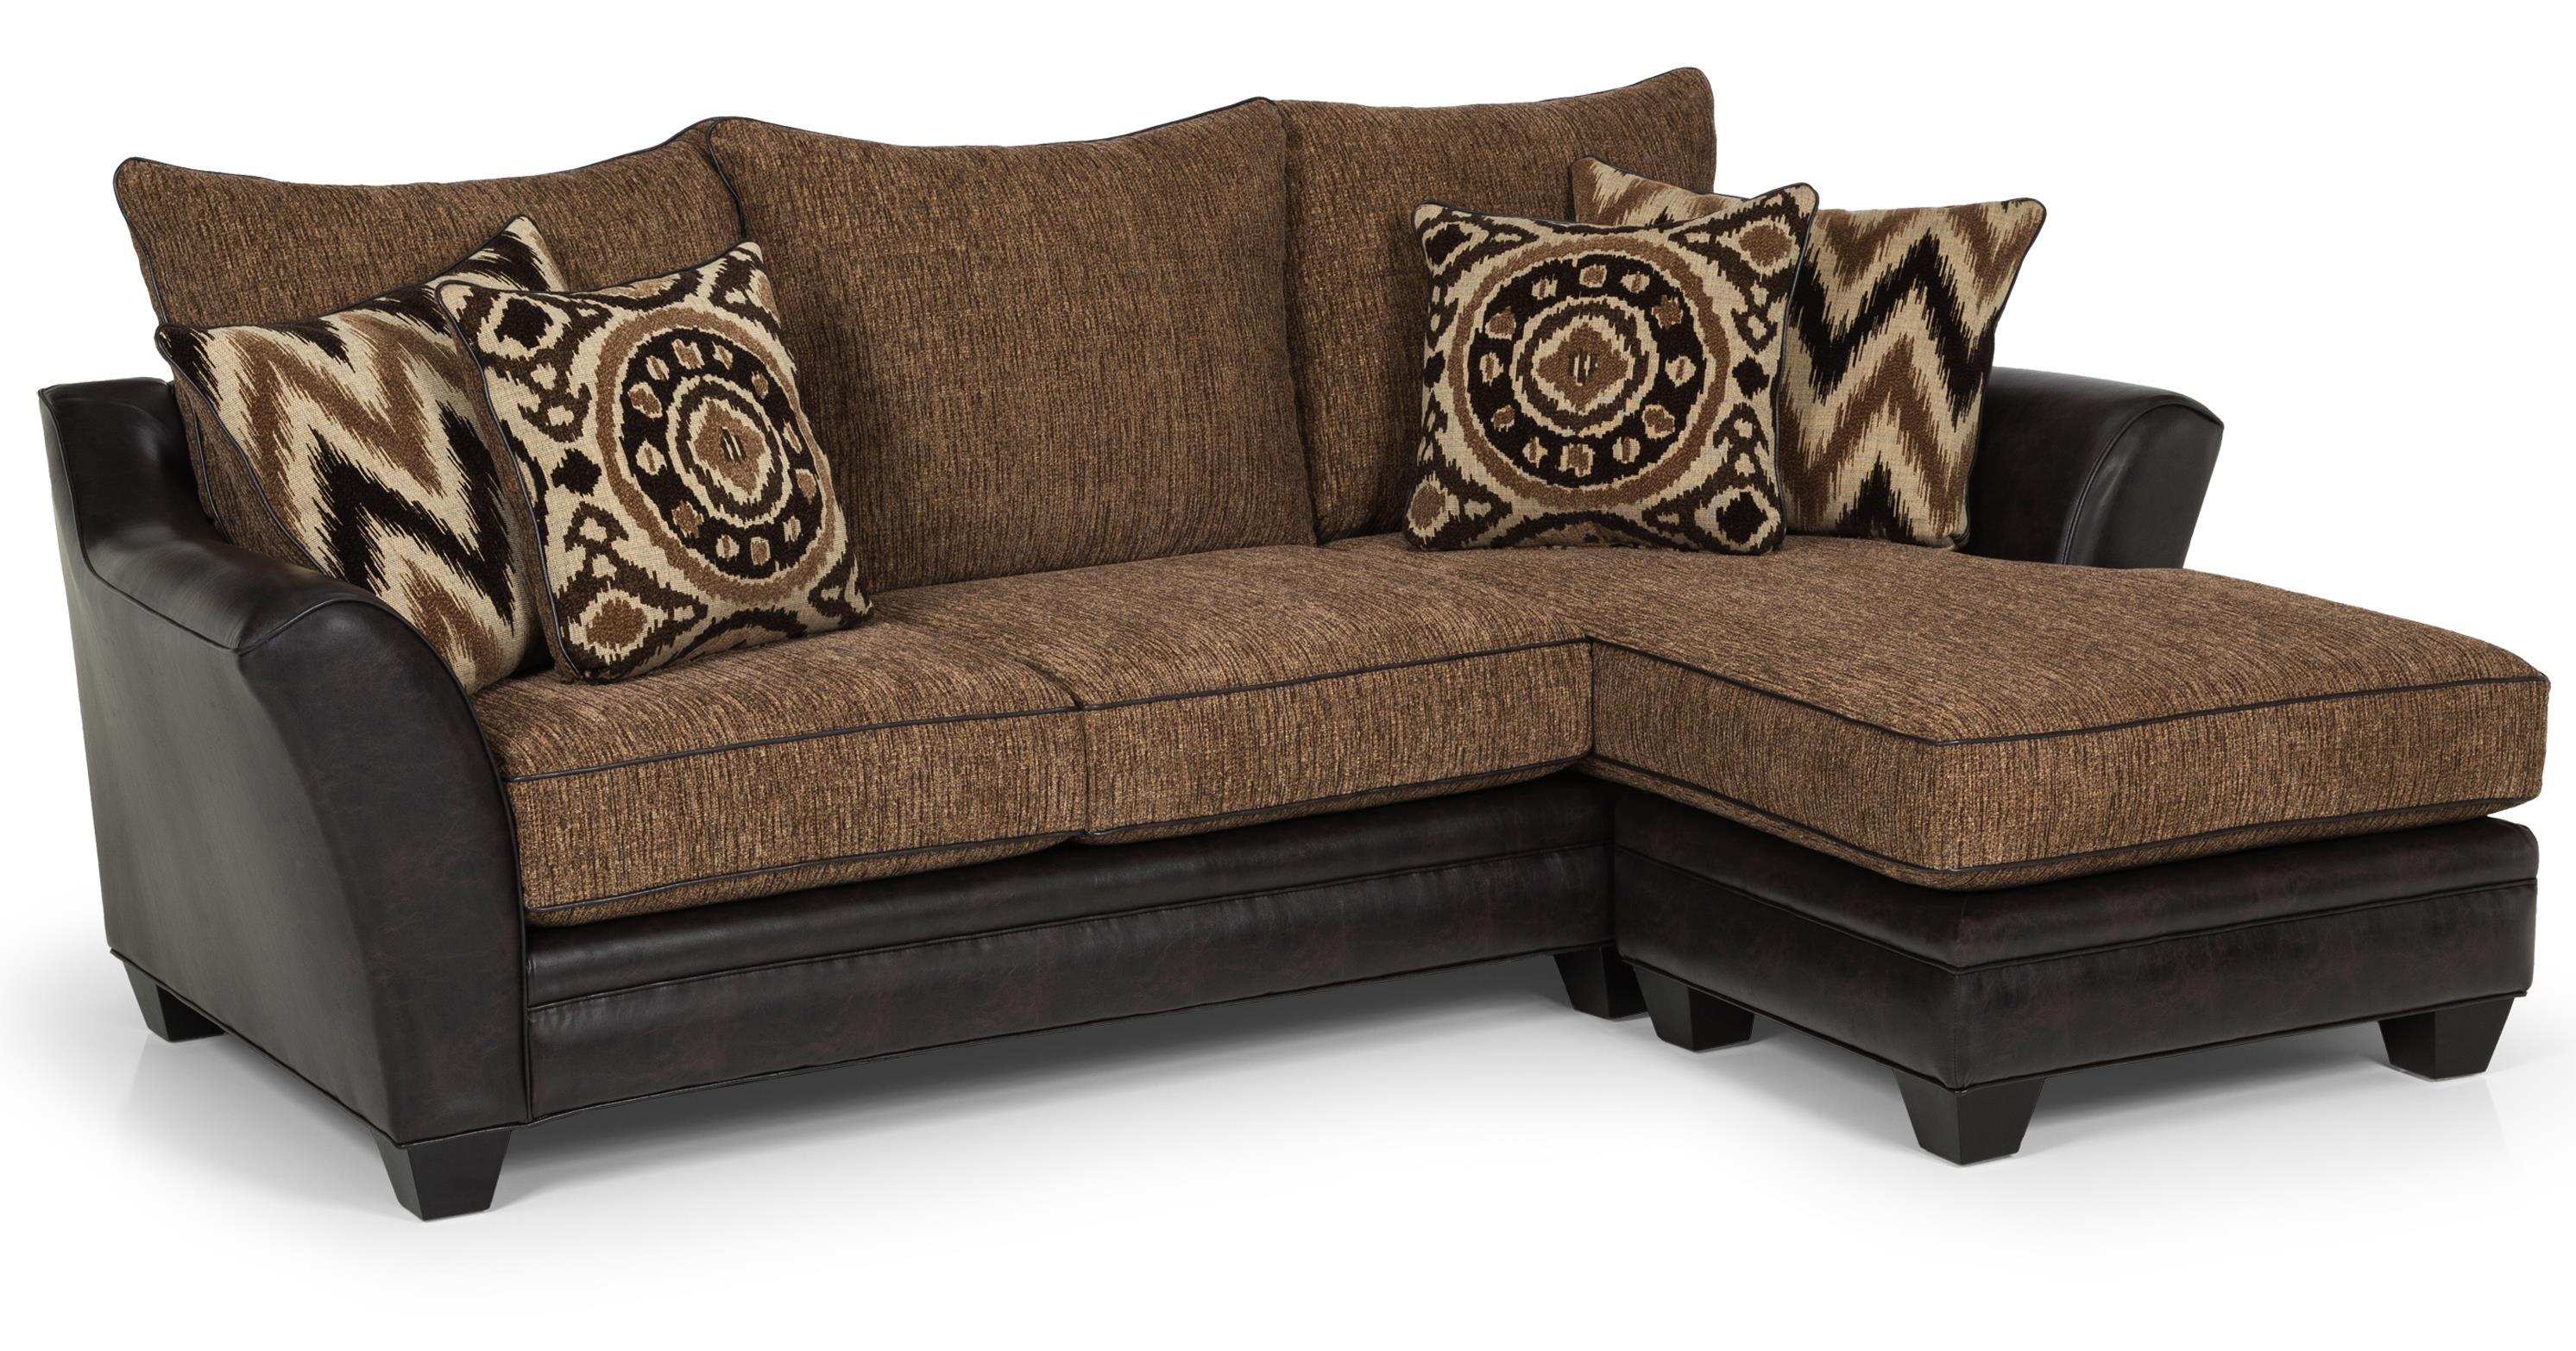 257 Sofa Chaise by Sunset Home at Sadler's Home Furnishings